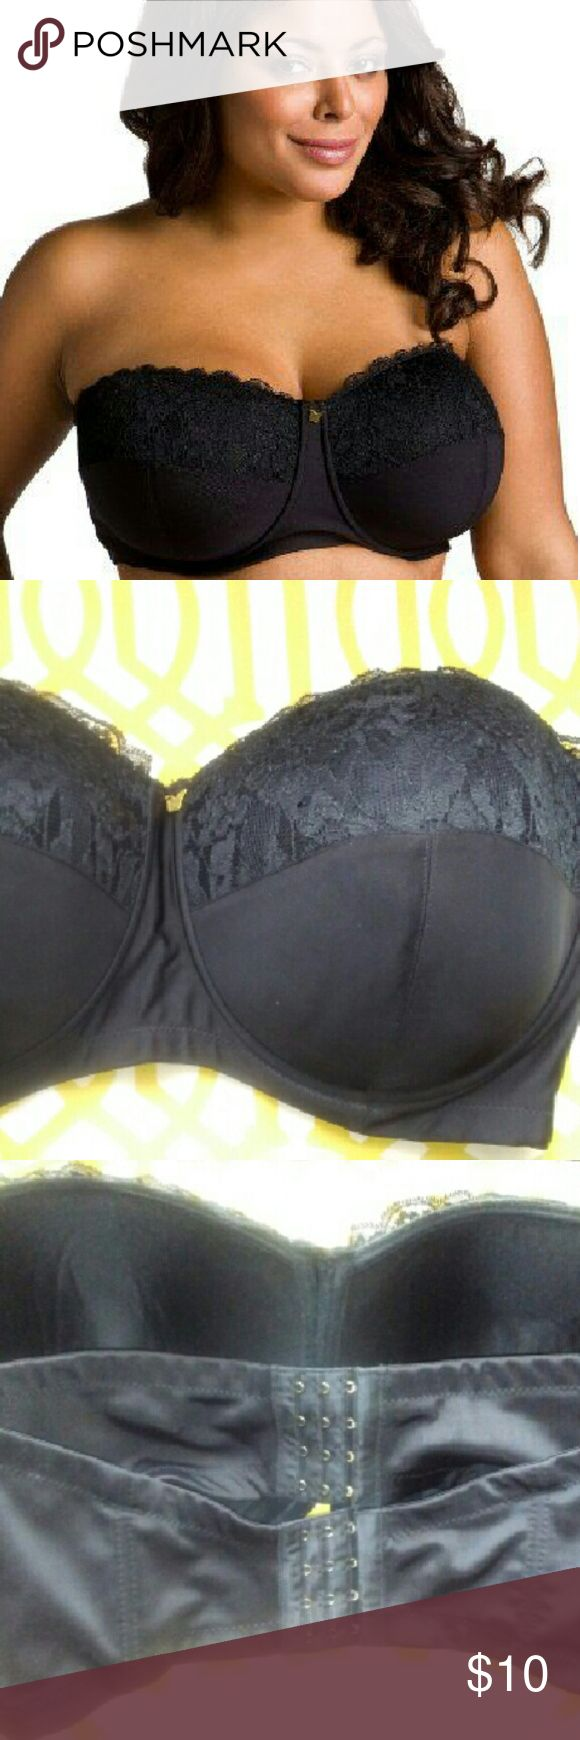 Ashley Stewart Jill Scott  Butterfly Bra Ashley Stewart Jill Scott Butterfly Bra Size 42 DDD. Convertible bra this bra has never been worn, however I lost the straps to go to the bra. But I'm sure you can purchase bra straps. This is a great bra for strapless dresses and halter tops. Ashley Stewart Intimates & Sleepwear Bras